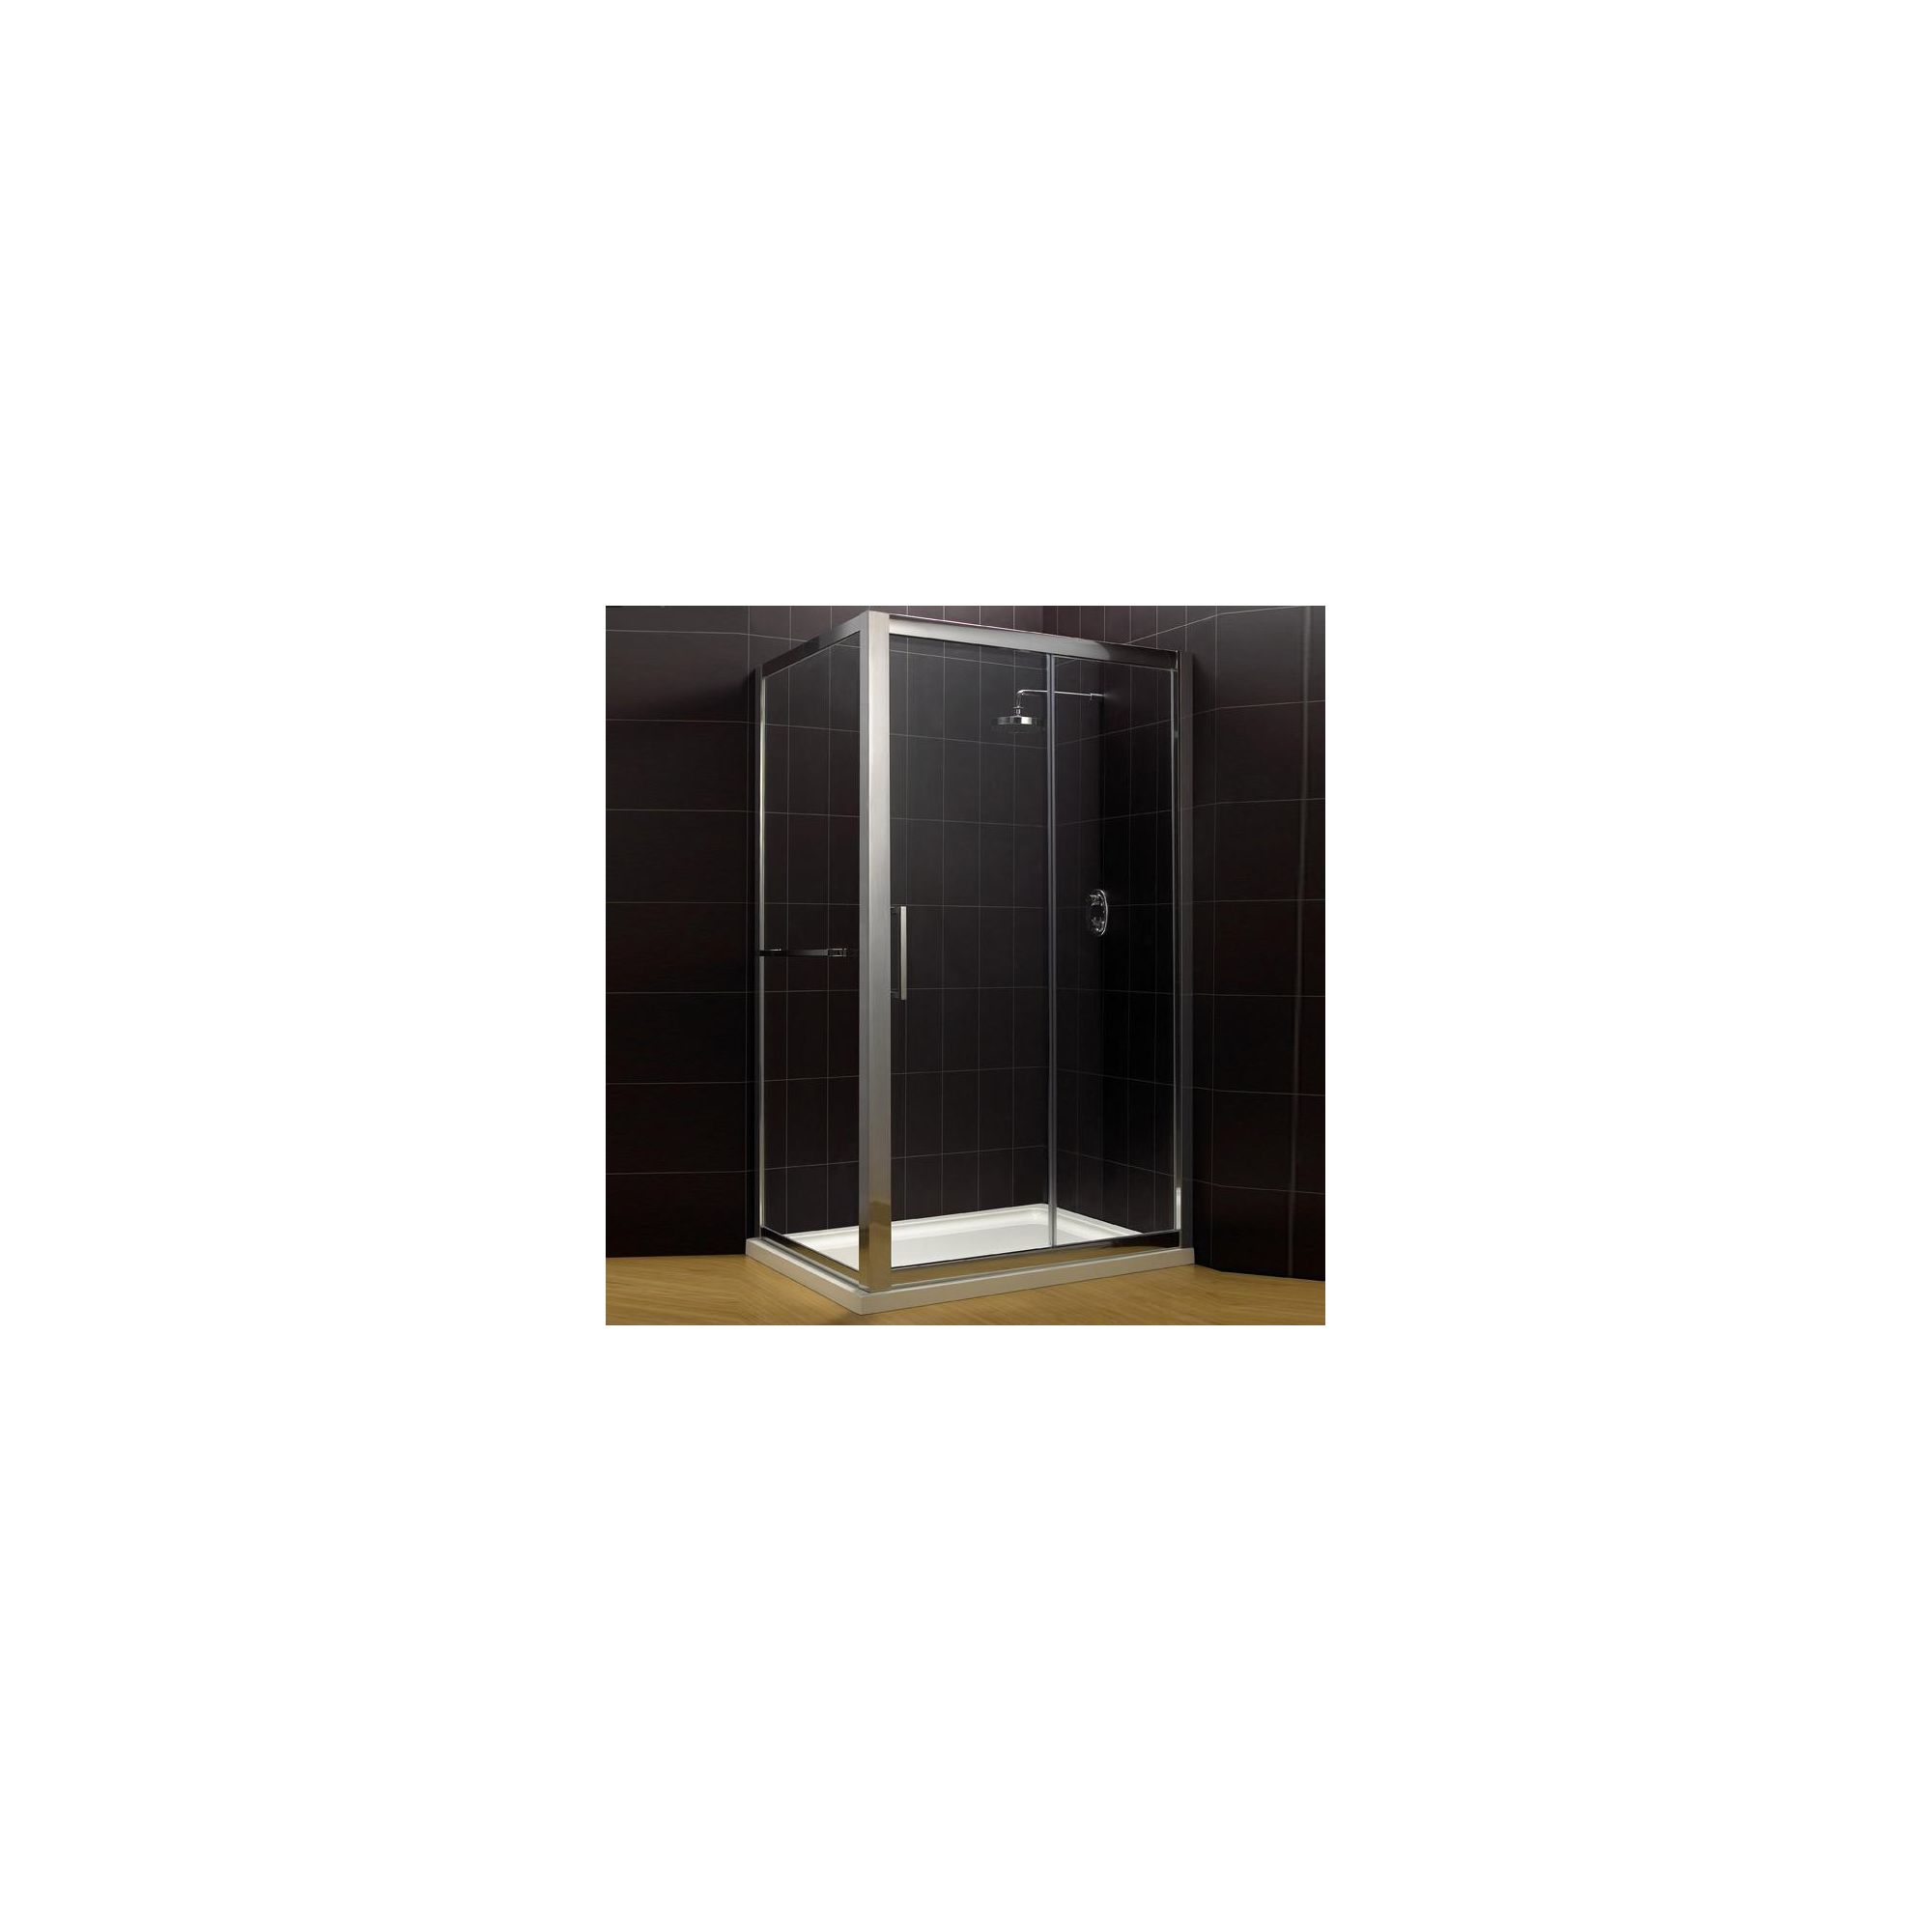 Duchy Supreme Silver Sliding Door Shower Enclosure with Towel Rail, 1600mm x 760mm, Standard Tray, 8mm Glass at Tesco Direct